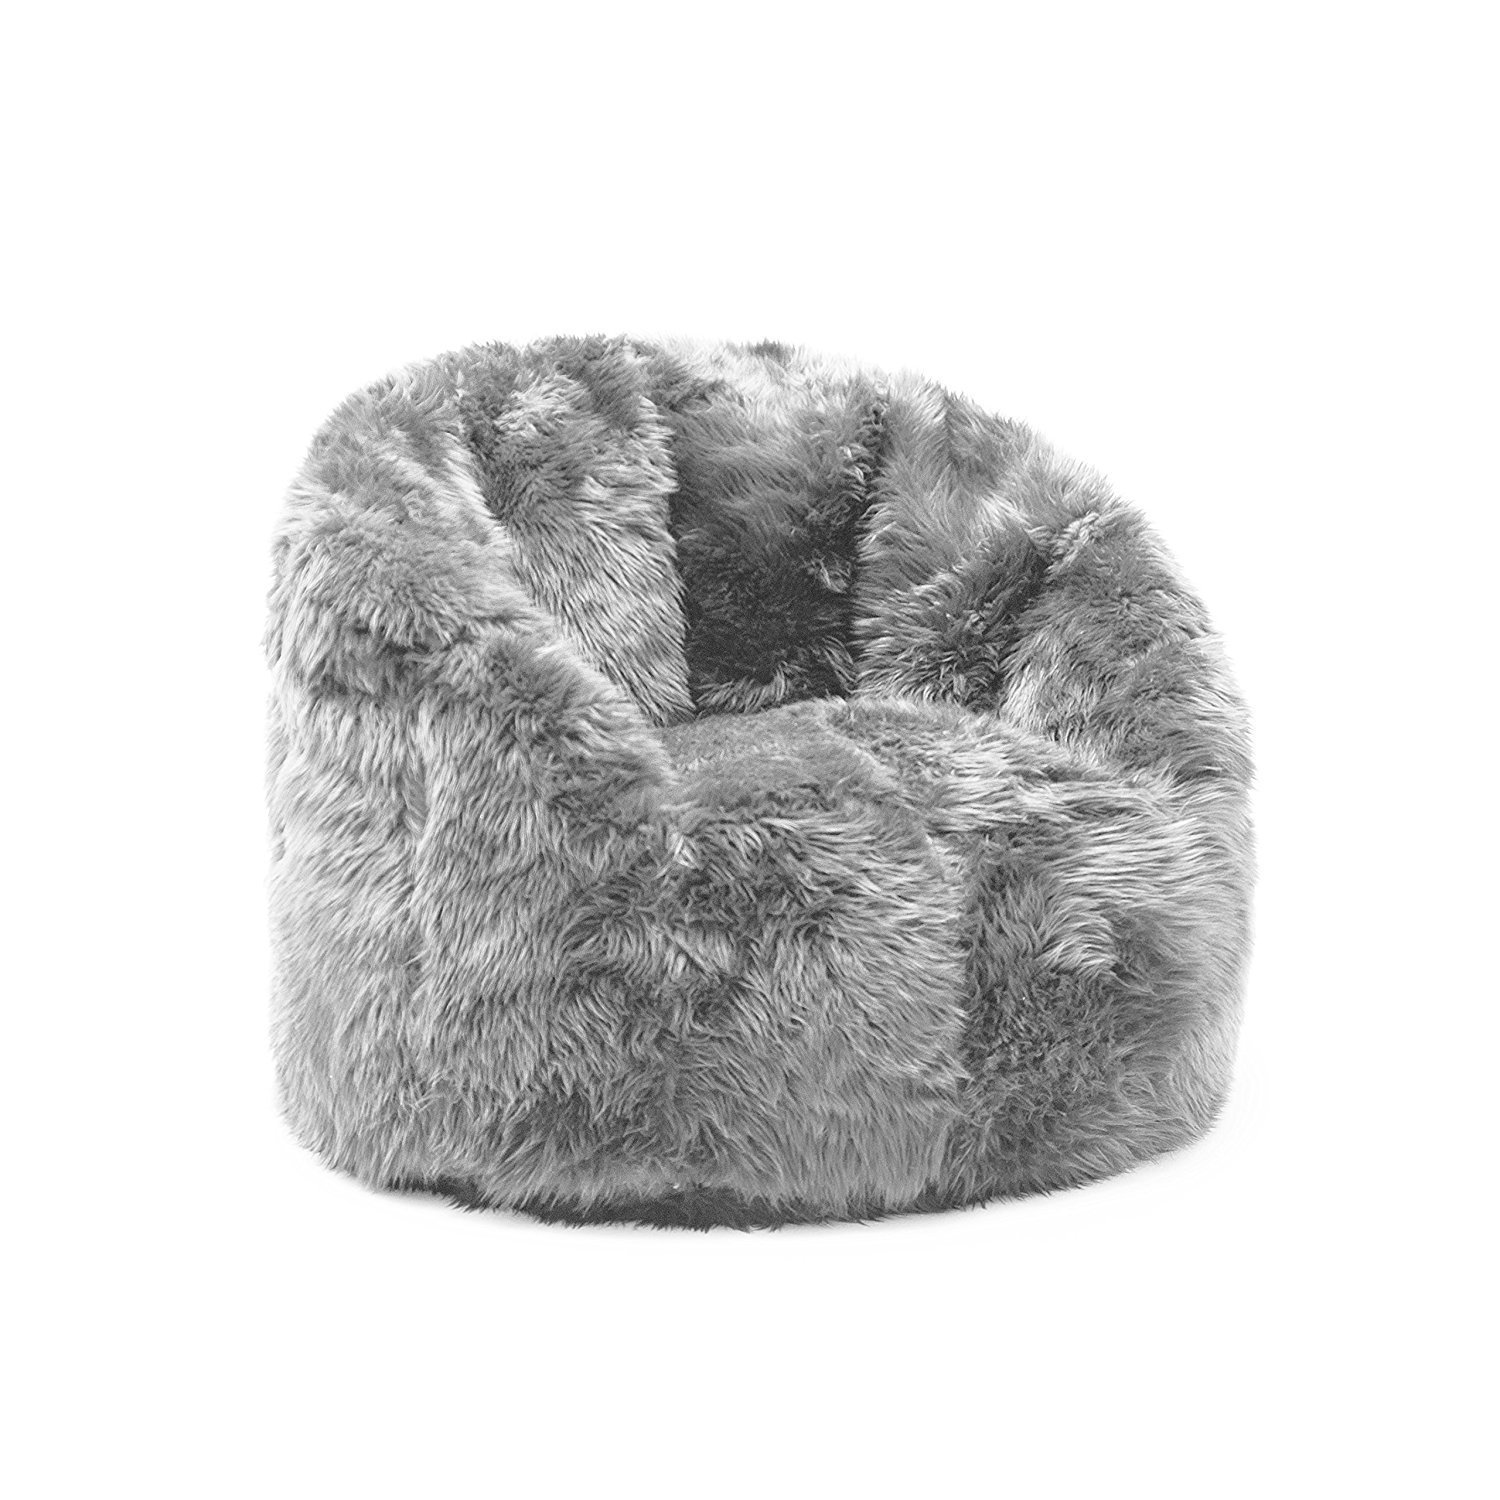 Bean Bag Chairs: Relax in style while watching TV or reading a book with one of these great bean bag chairs. Bean bag chairs create additional seating where you need it most. Free Shipping on orders over $45 at apssocial.ml - Your Online Living Room Furniture Store! Get 5% in rewards with Club O!